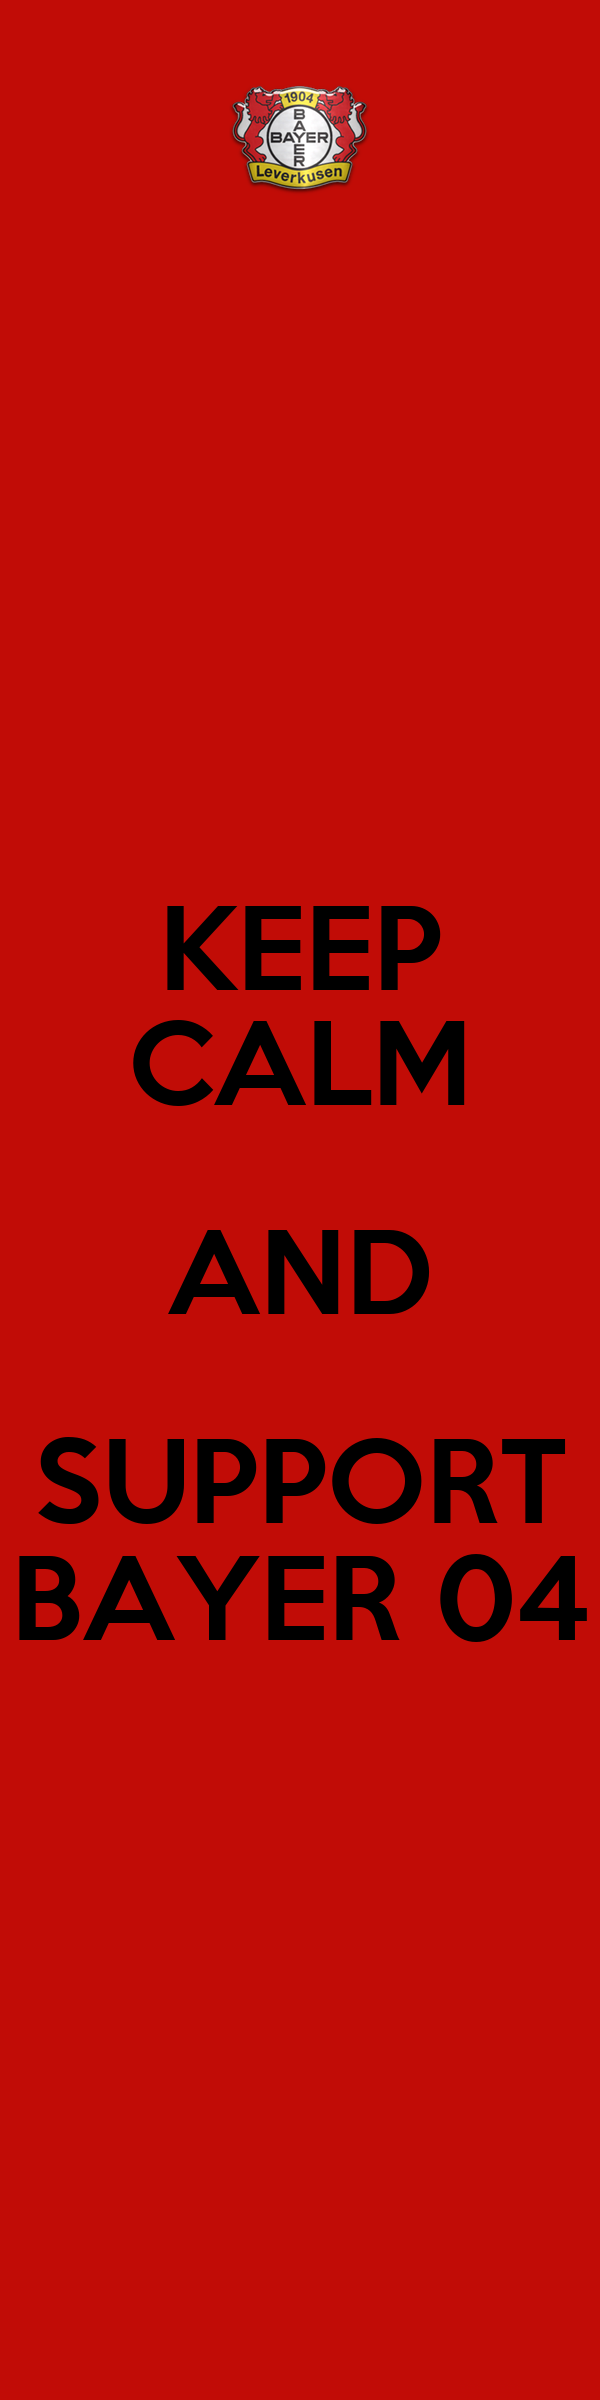 KEEP CALM AND SUPPORT BAYER 04